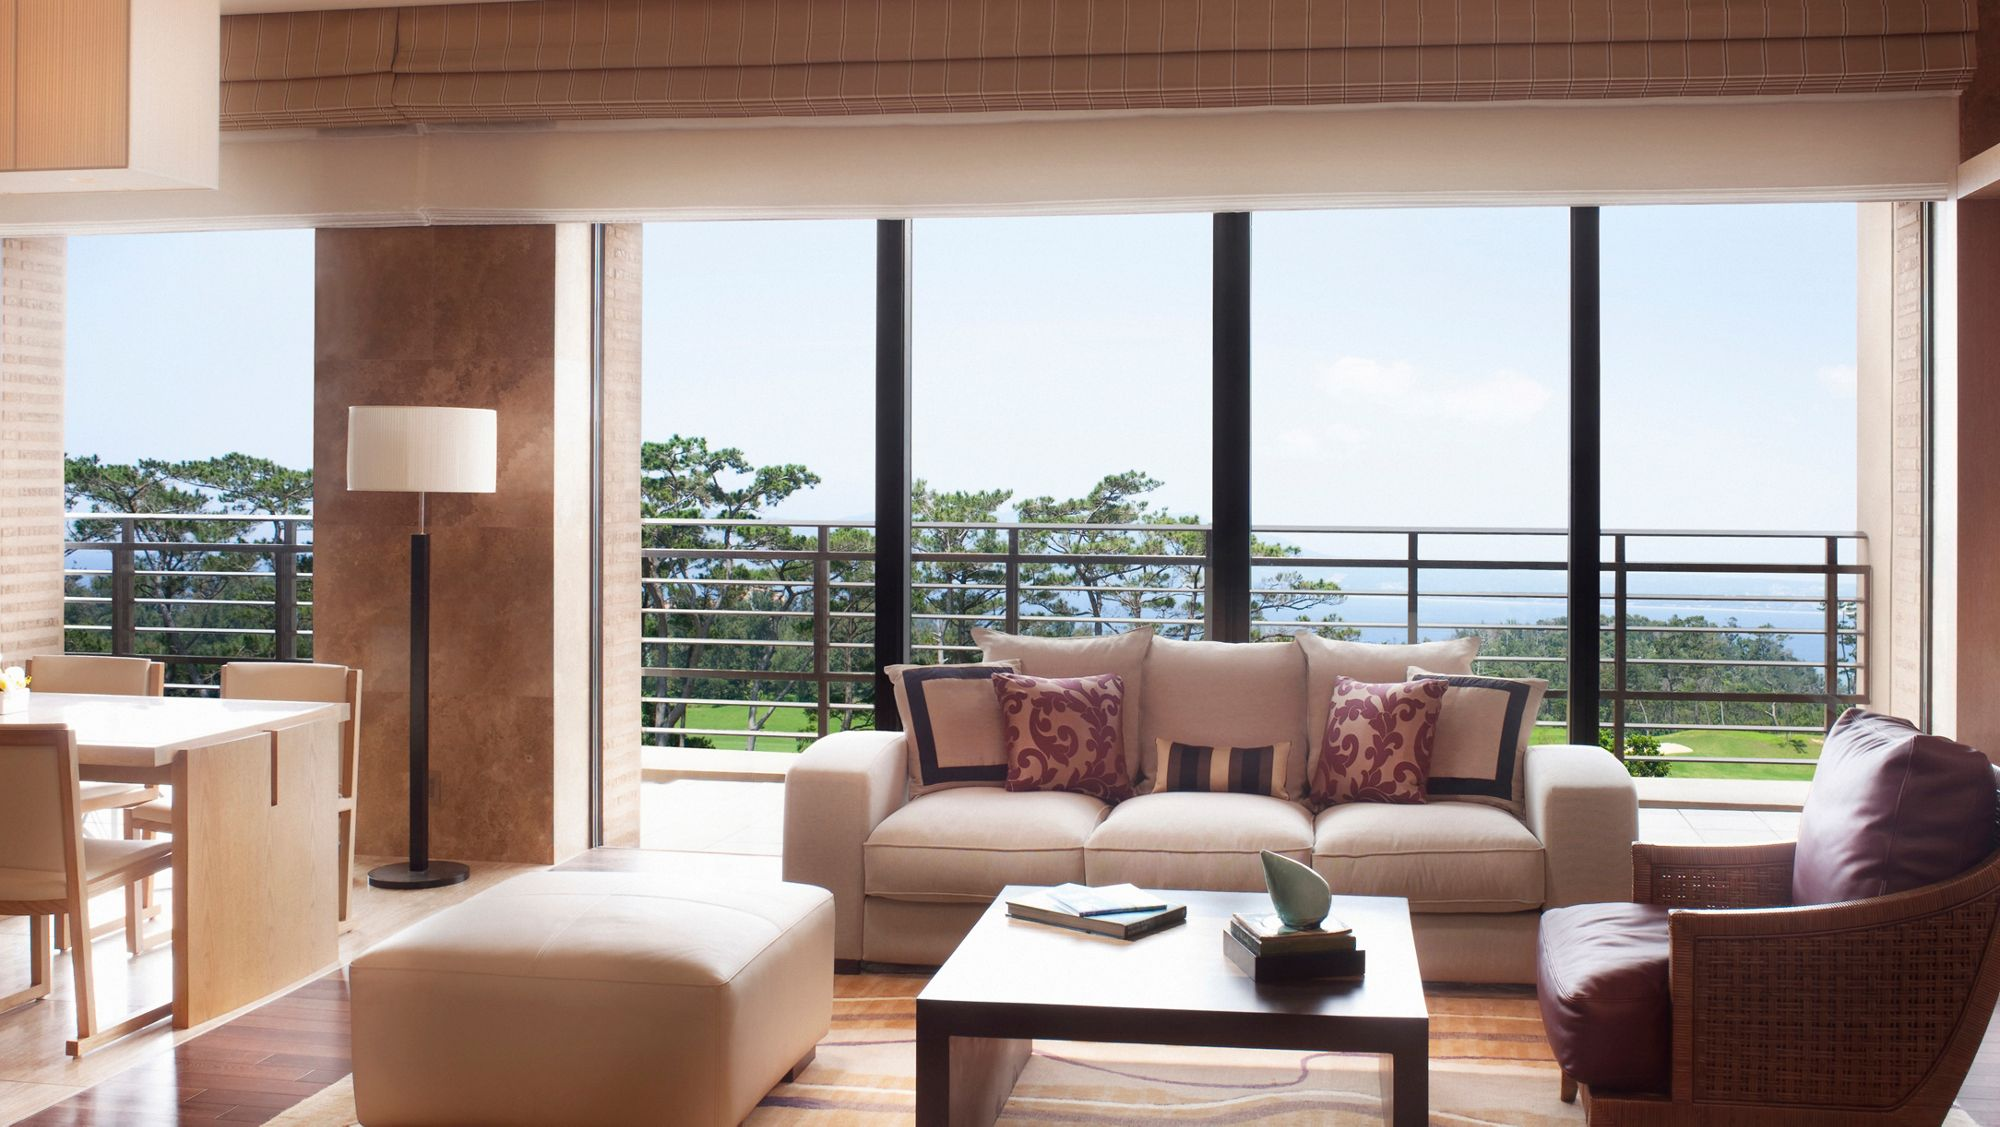 The expansive living room of the well-appointed Ritz-Carlton Suite in Okinawa